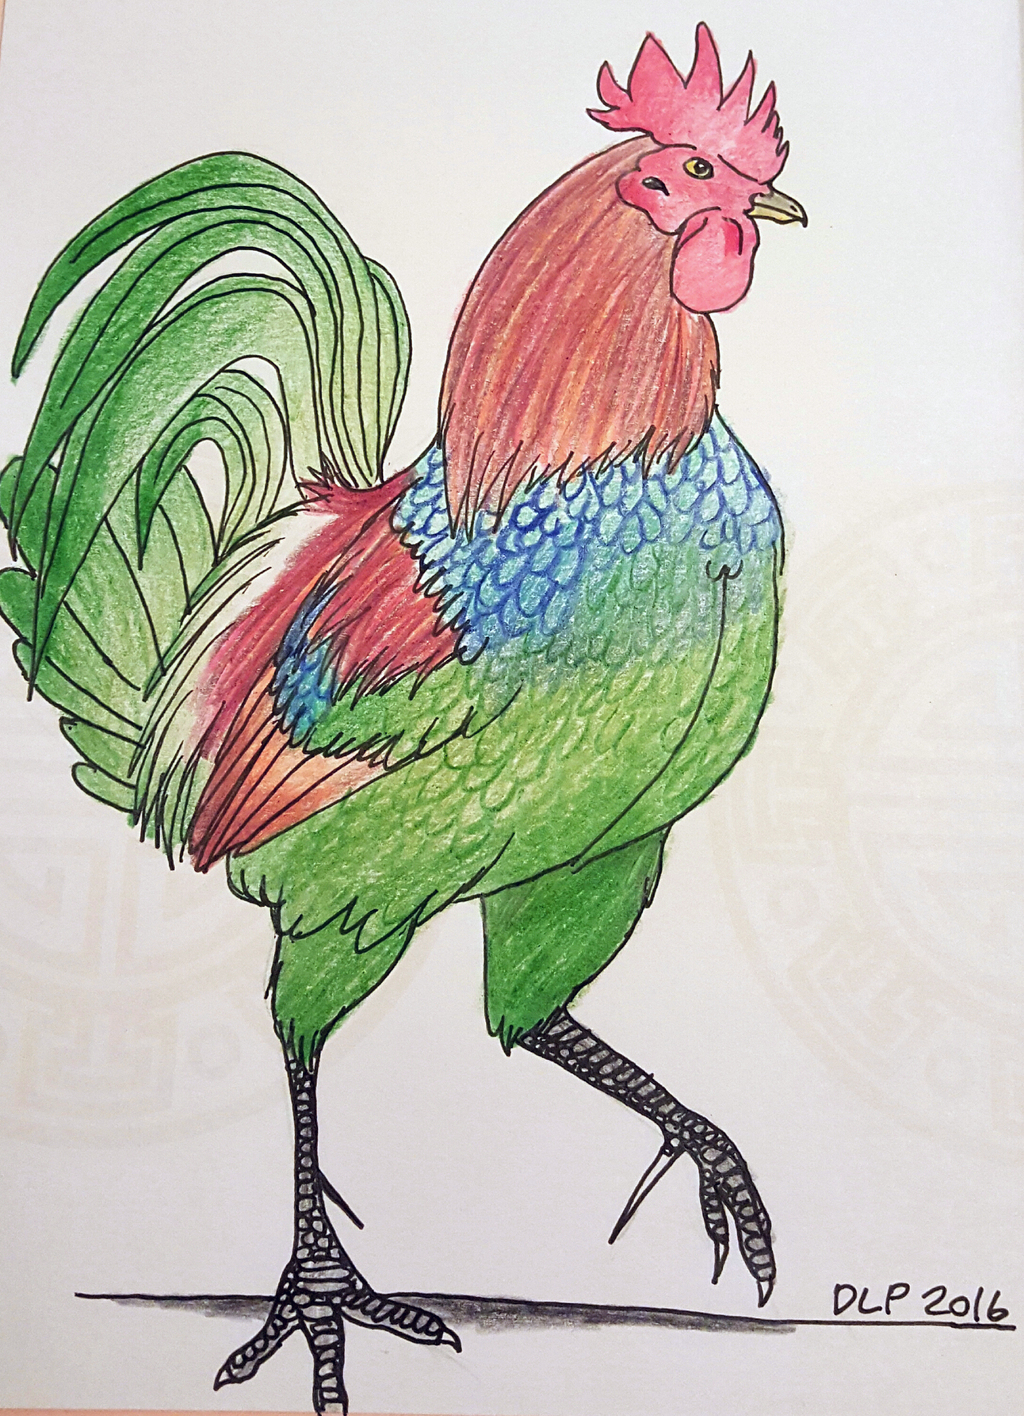 2017-Year of the Rooster